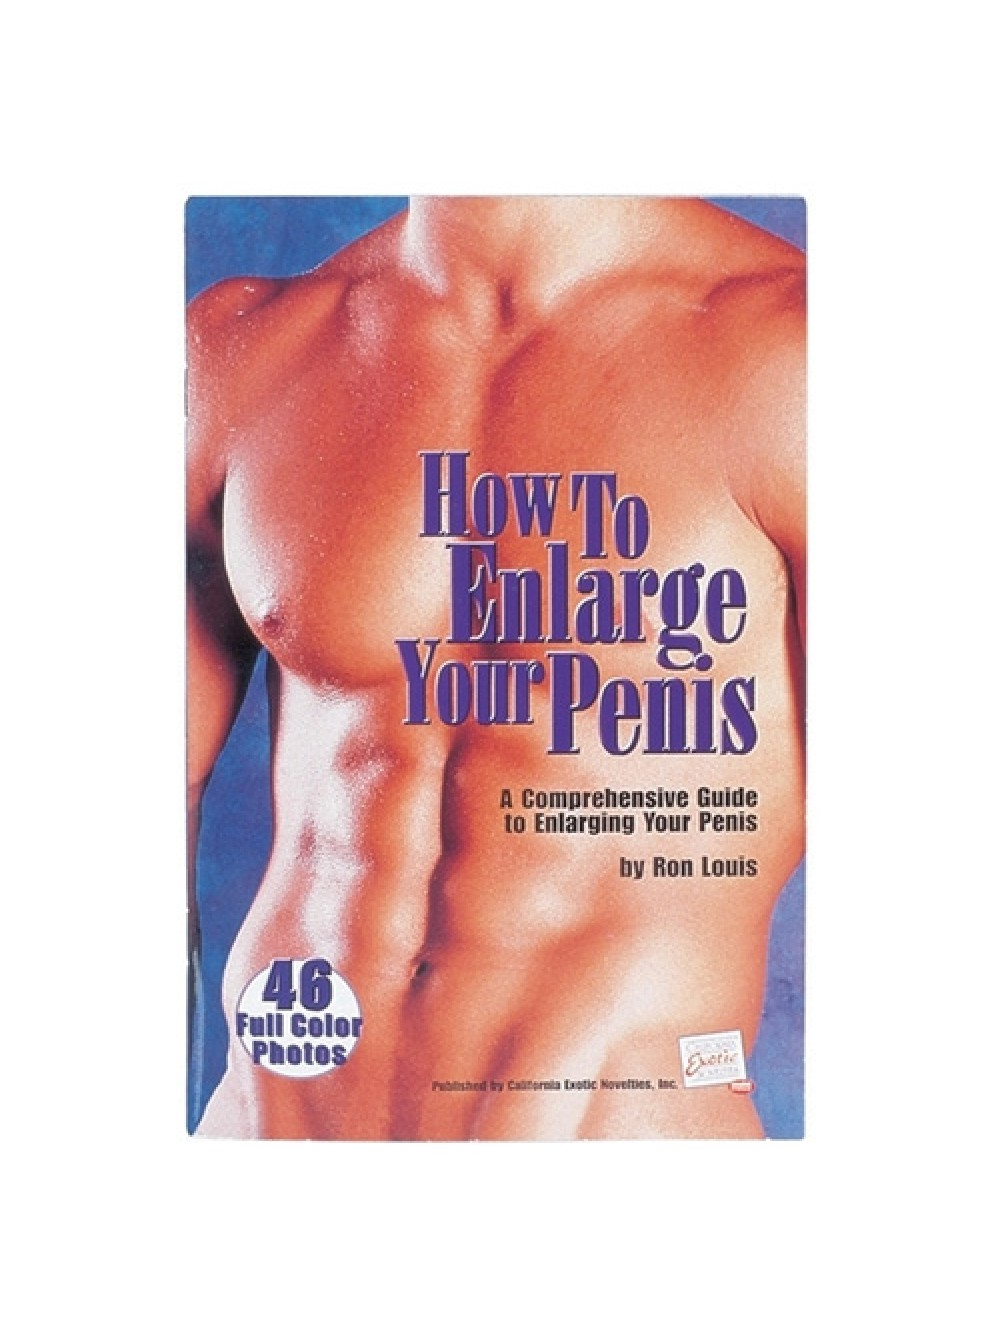 How to Enlarge Your Penis Book 716770015471